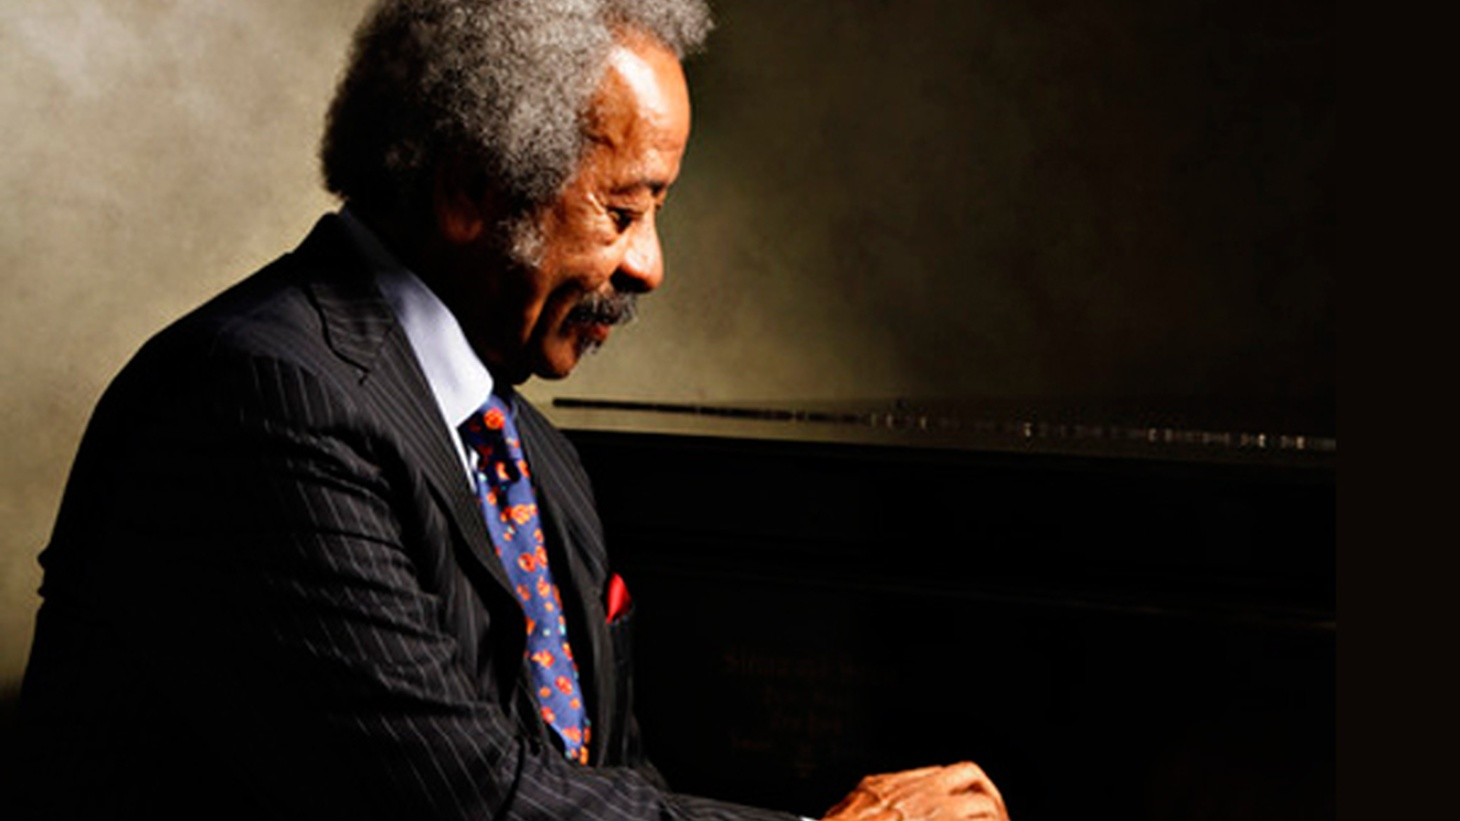 Composer, producer and arranger Allen Toussaint embodied the sound of New Orleans. American Tunes is the last album he recorded and features some of his favorite covers including work by Paul Simon, Duke Ellington and Fats Waller.